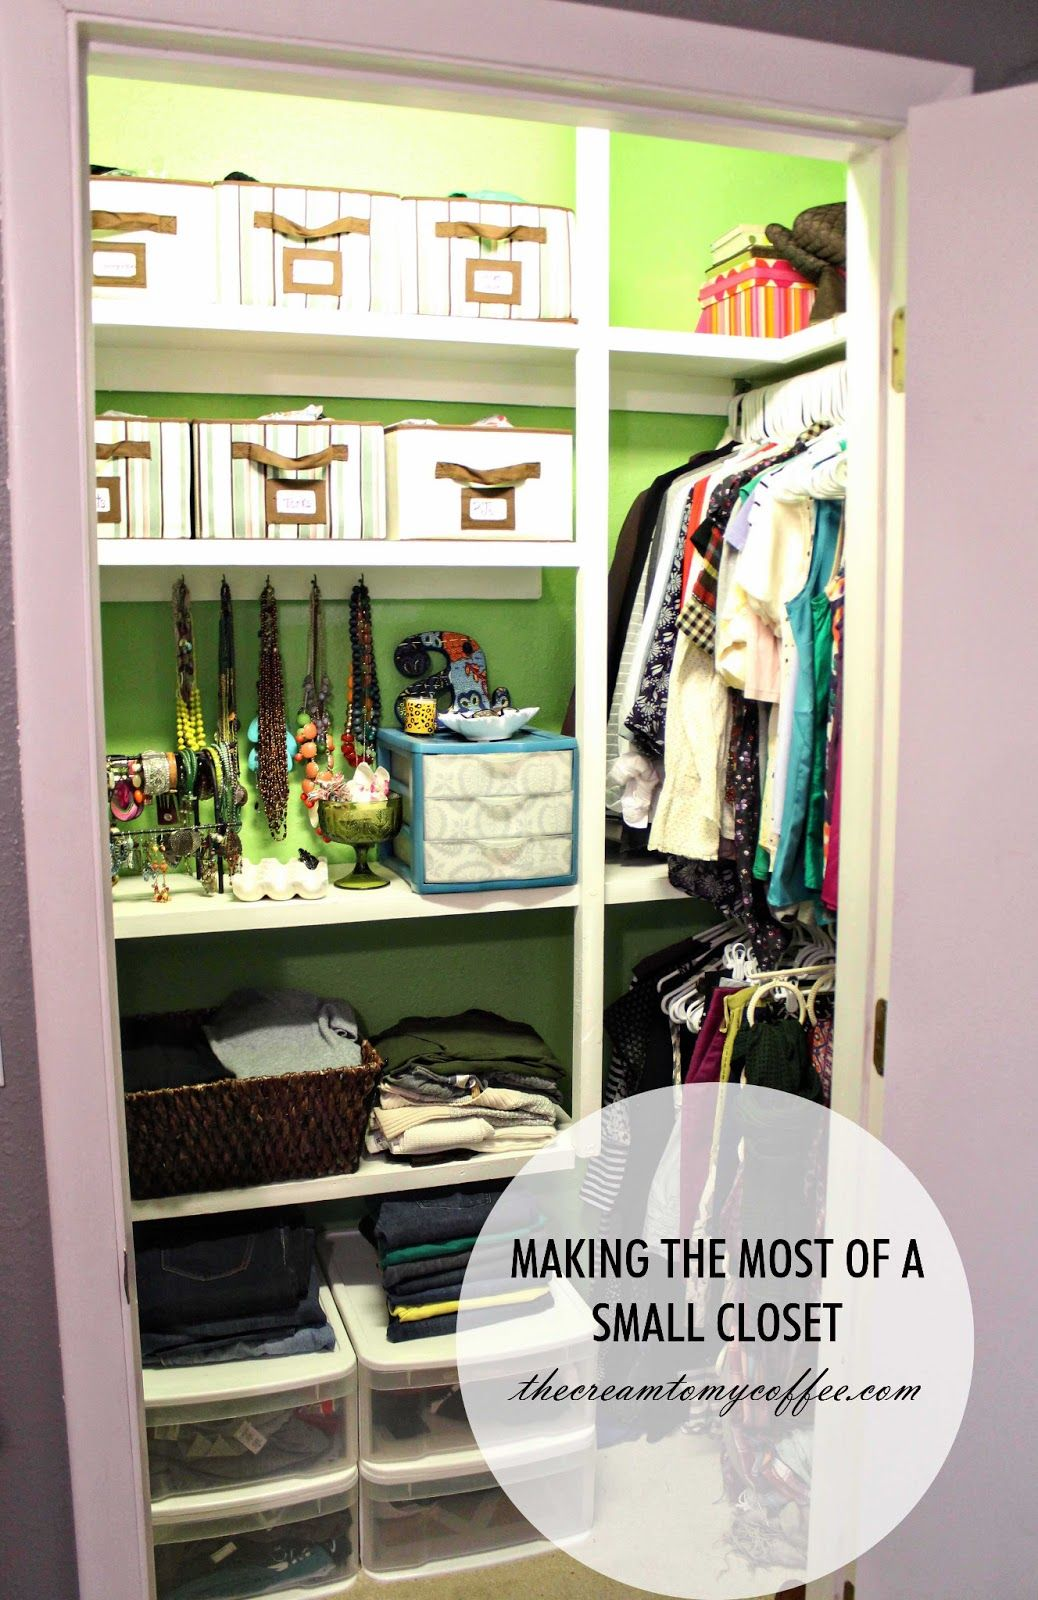 Small Closet Design Ideas closet organization for small rooms Small Closet Organization Diy Small Closet Organizer Plans Master Suite Pinterest Closet Organization Woodworking Plans And Closet